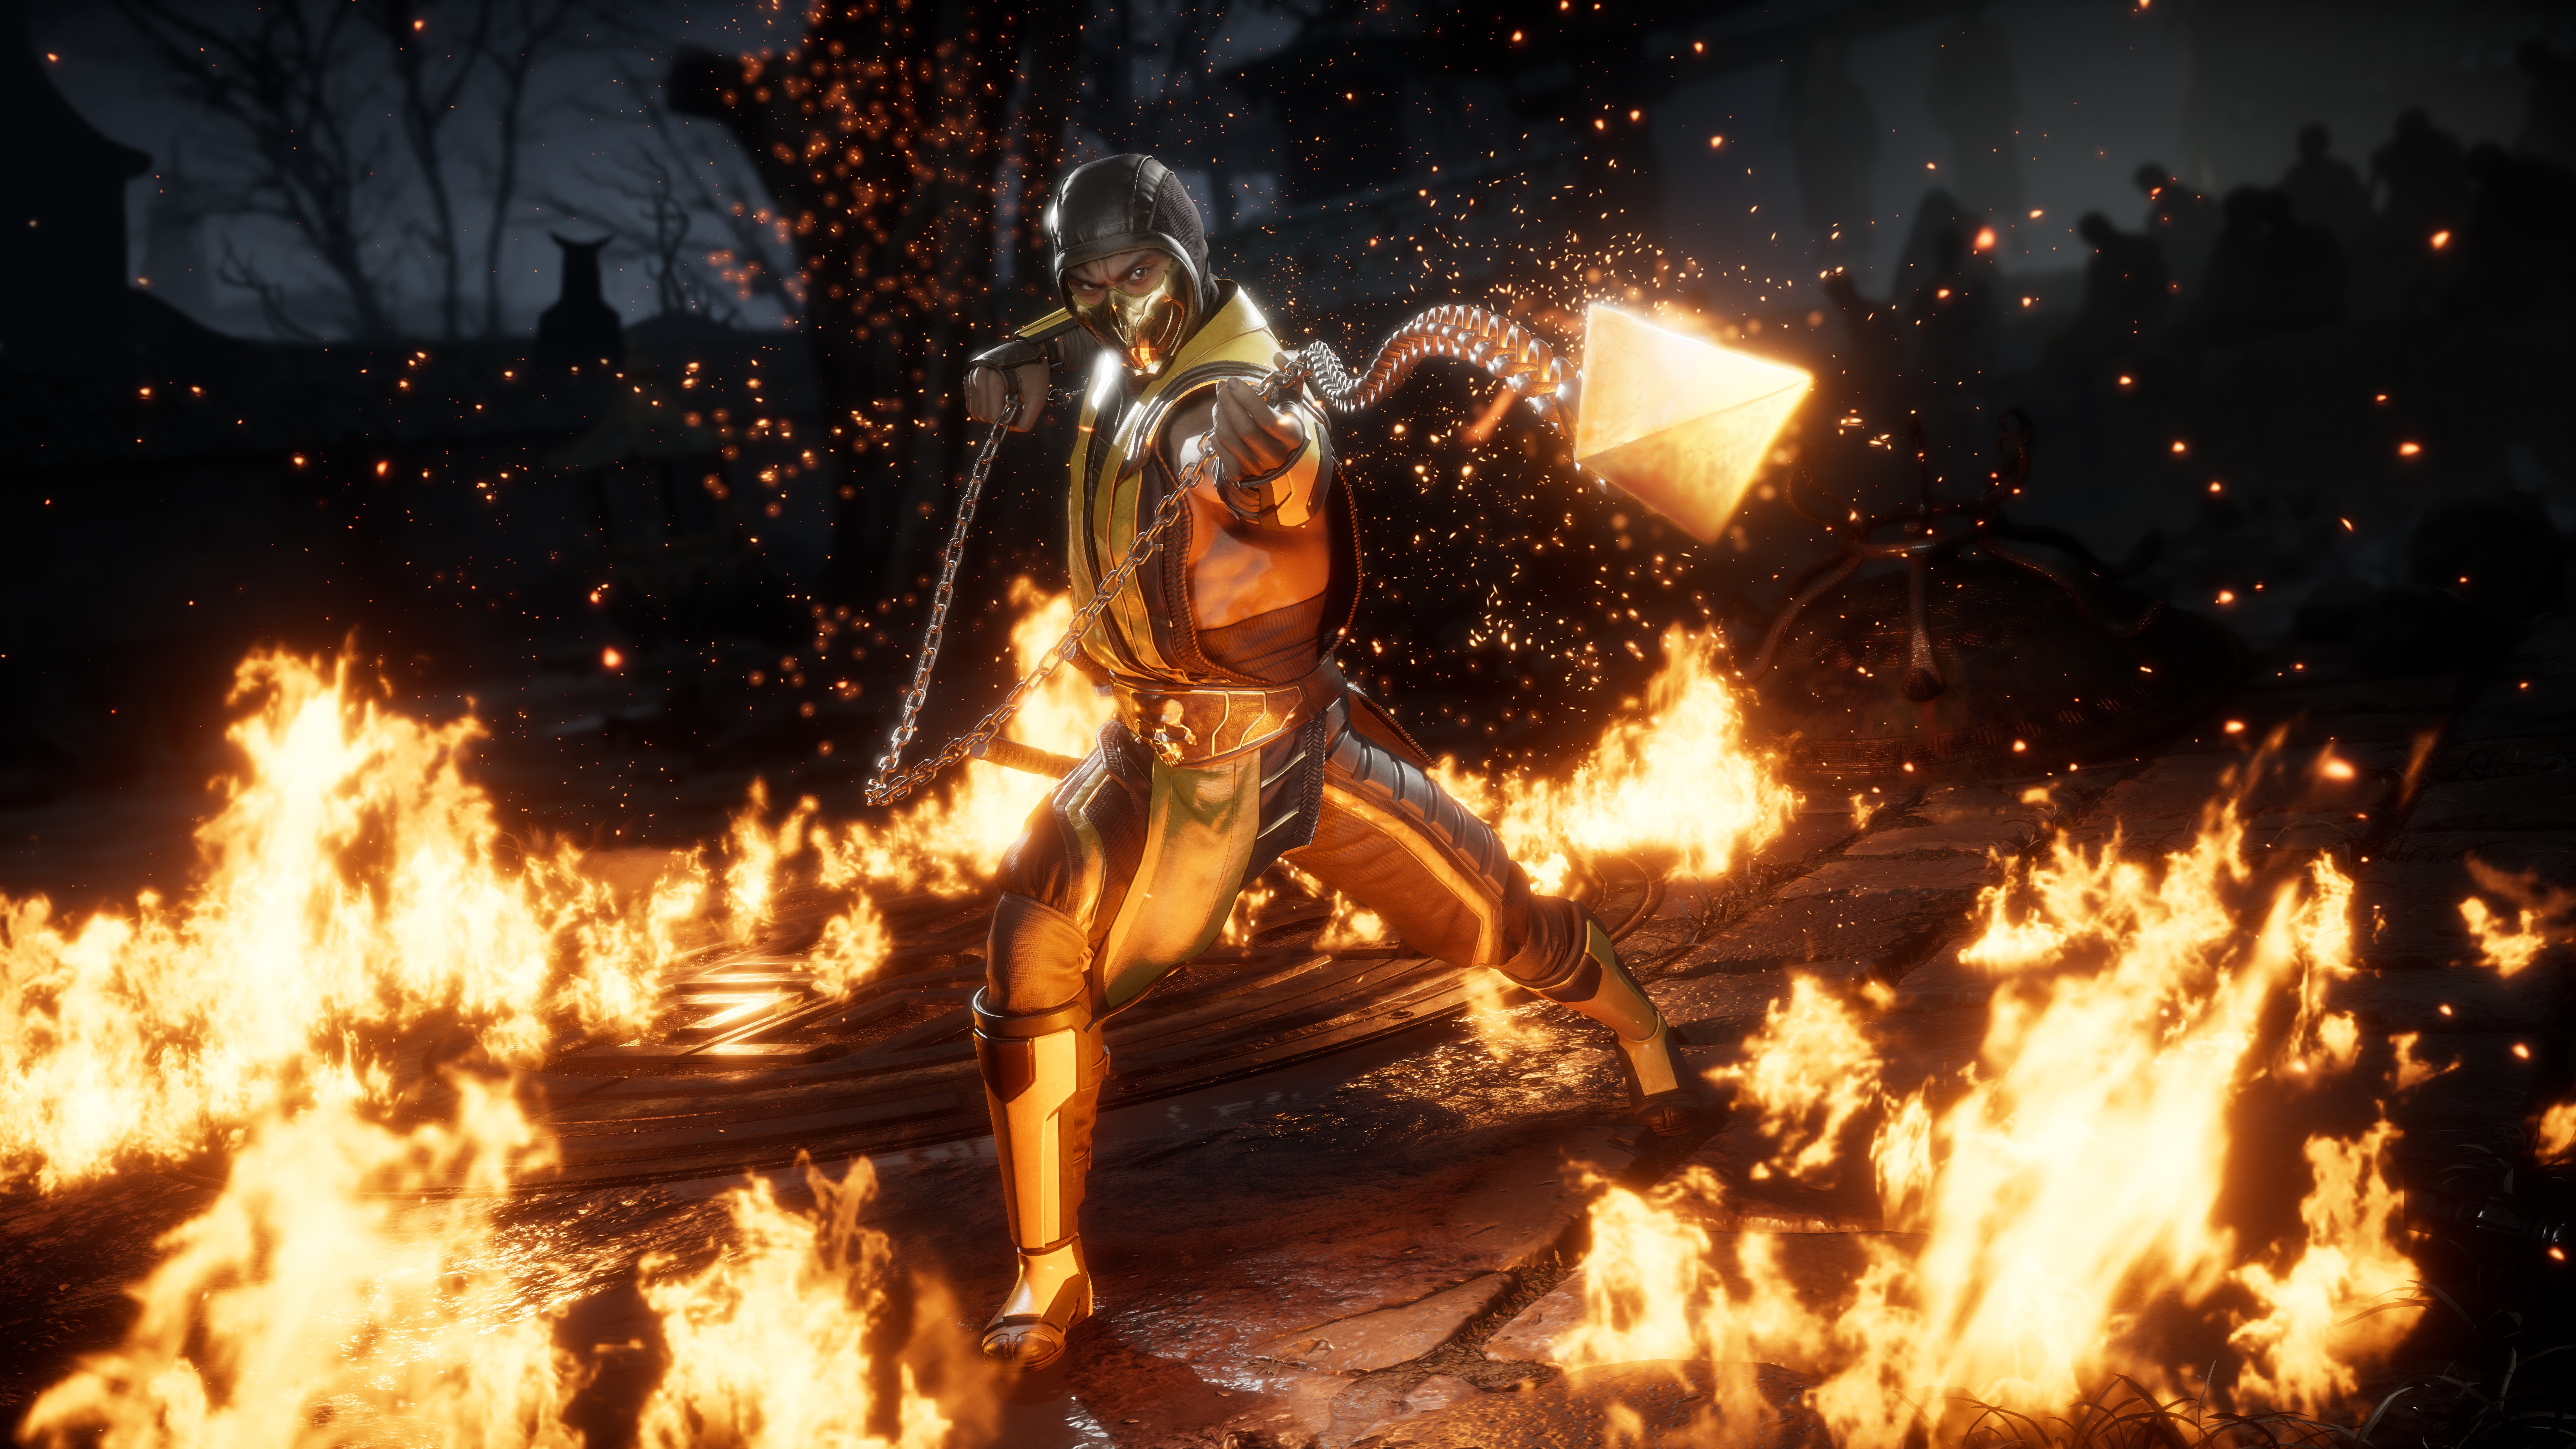 Mortal Kombat 11 wallpaper - Scorpion on fire